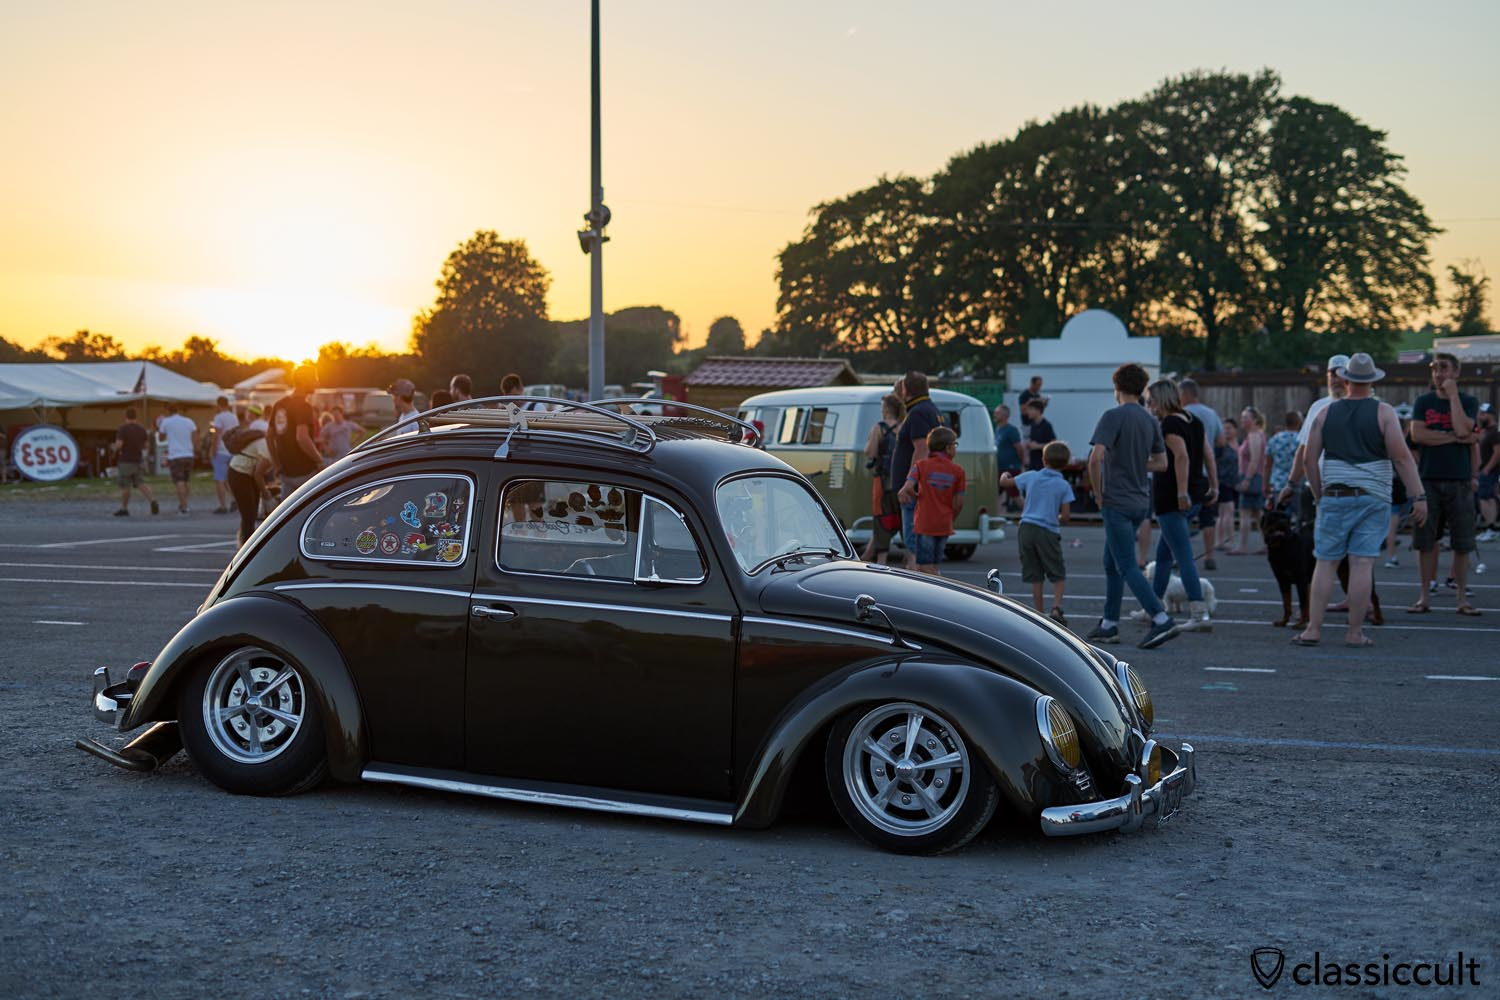 VW Oval sunset, European Bug In #8